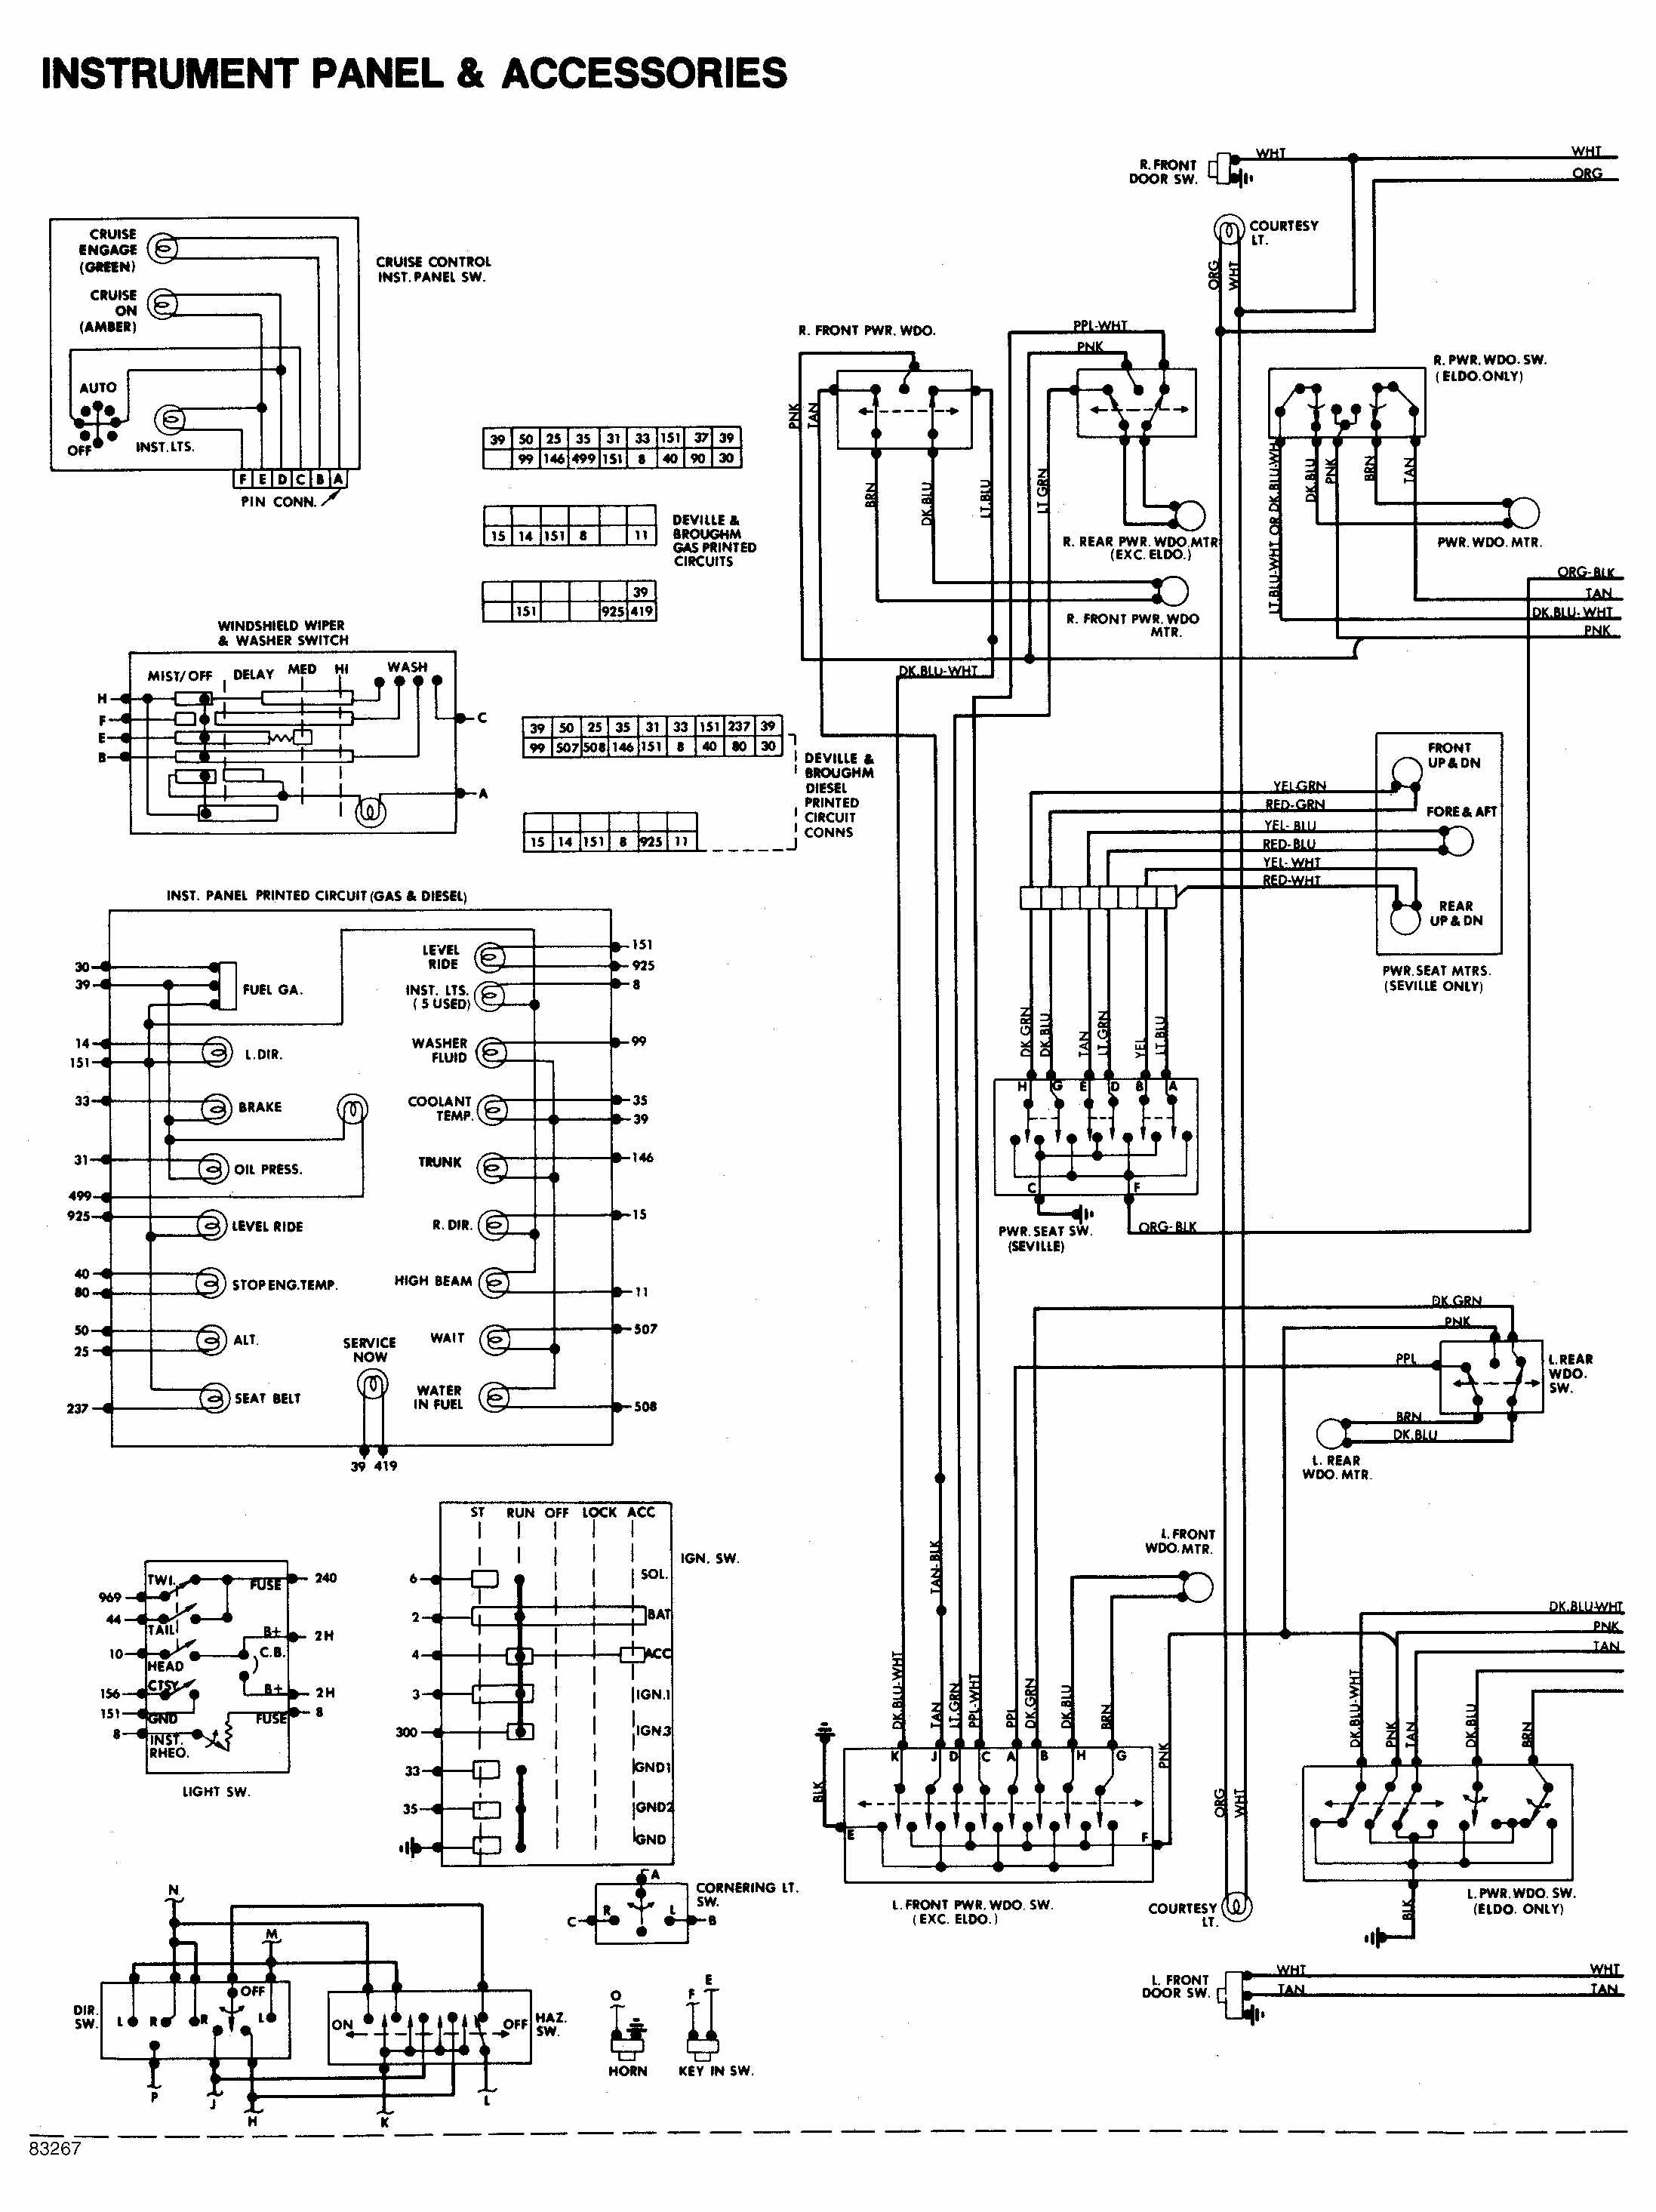 instrument panel and accessories wiring diagram of 1984 cadillac deville cadillac wiring harness ram truck wiring harness \u2022 wiring diagrams  at reclaimingppi.co